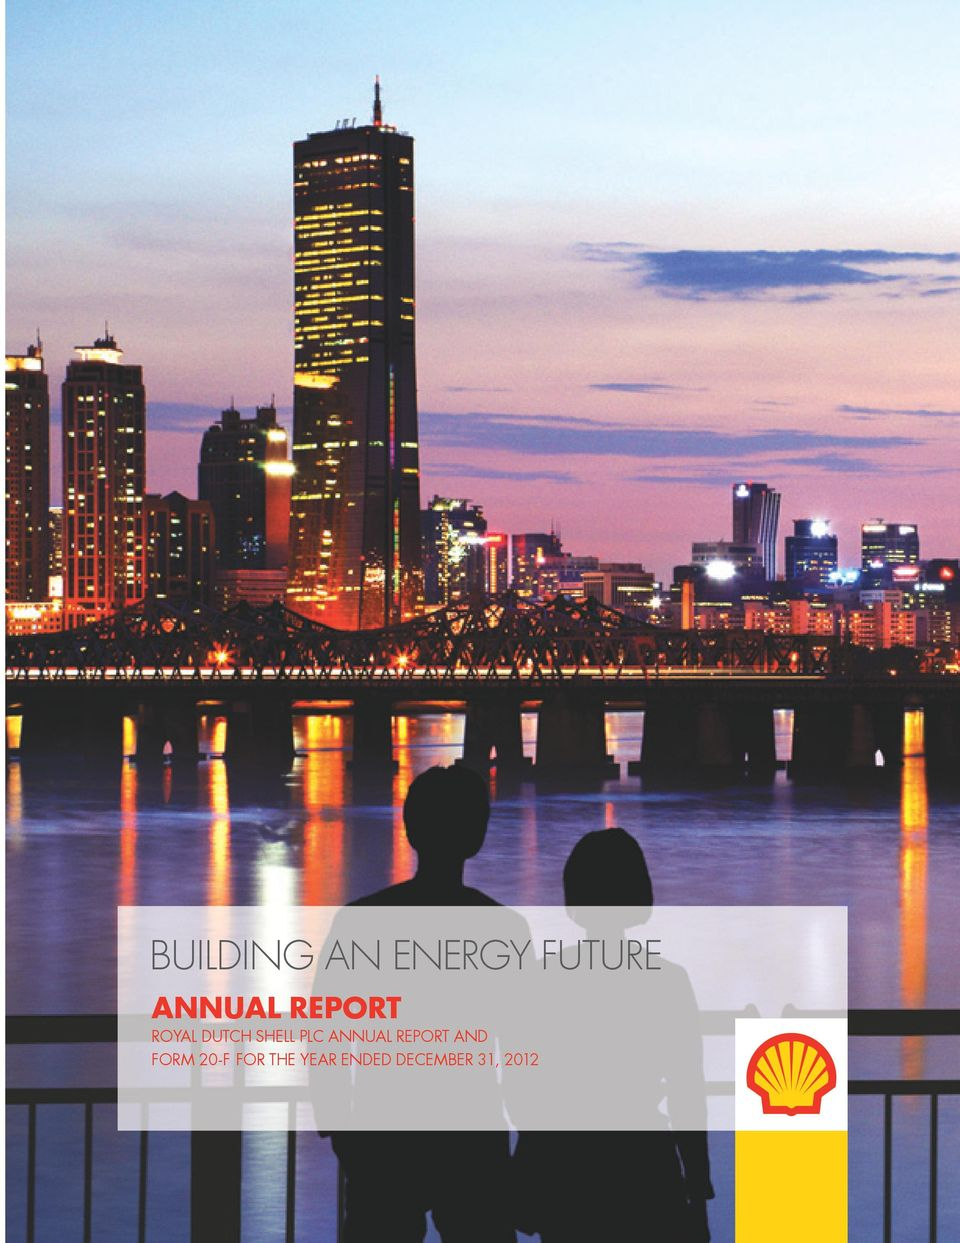 plc Annual Report and Form 20-F